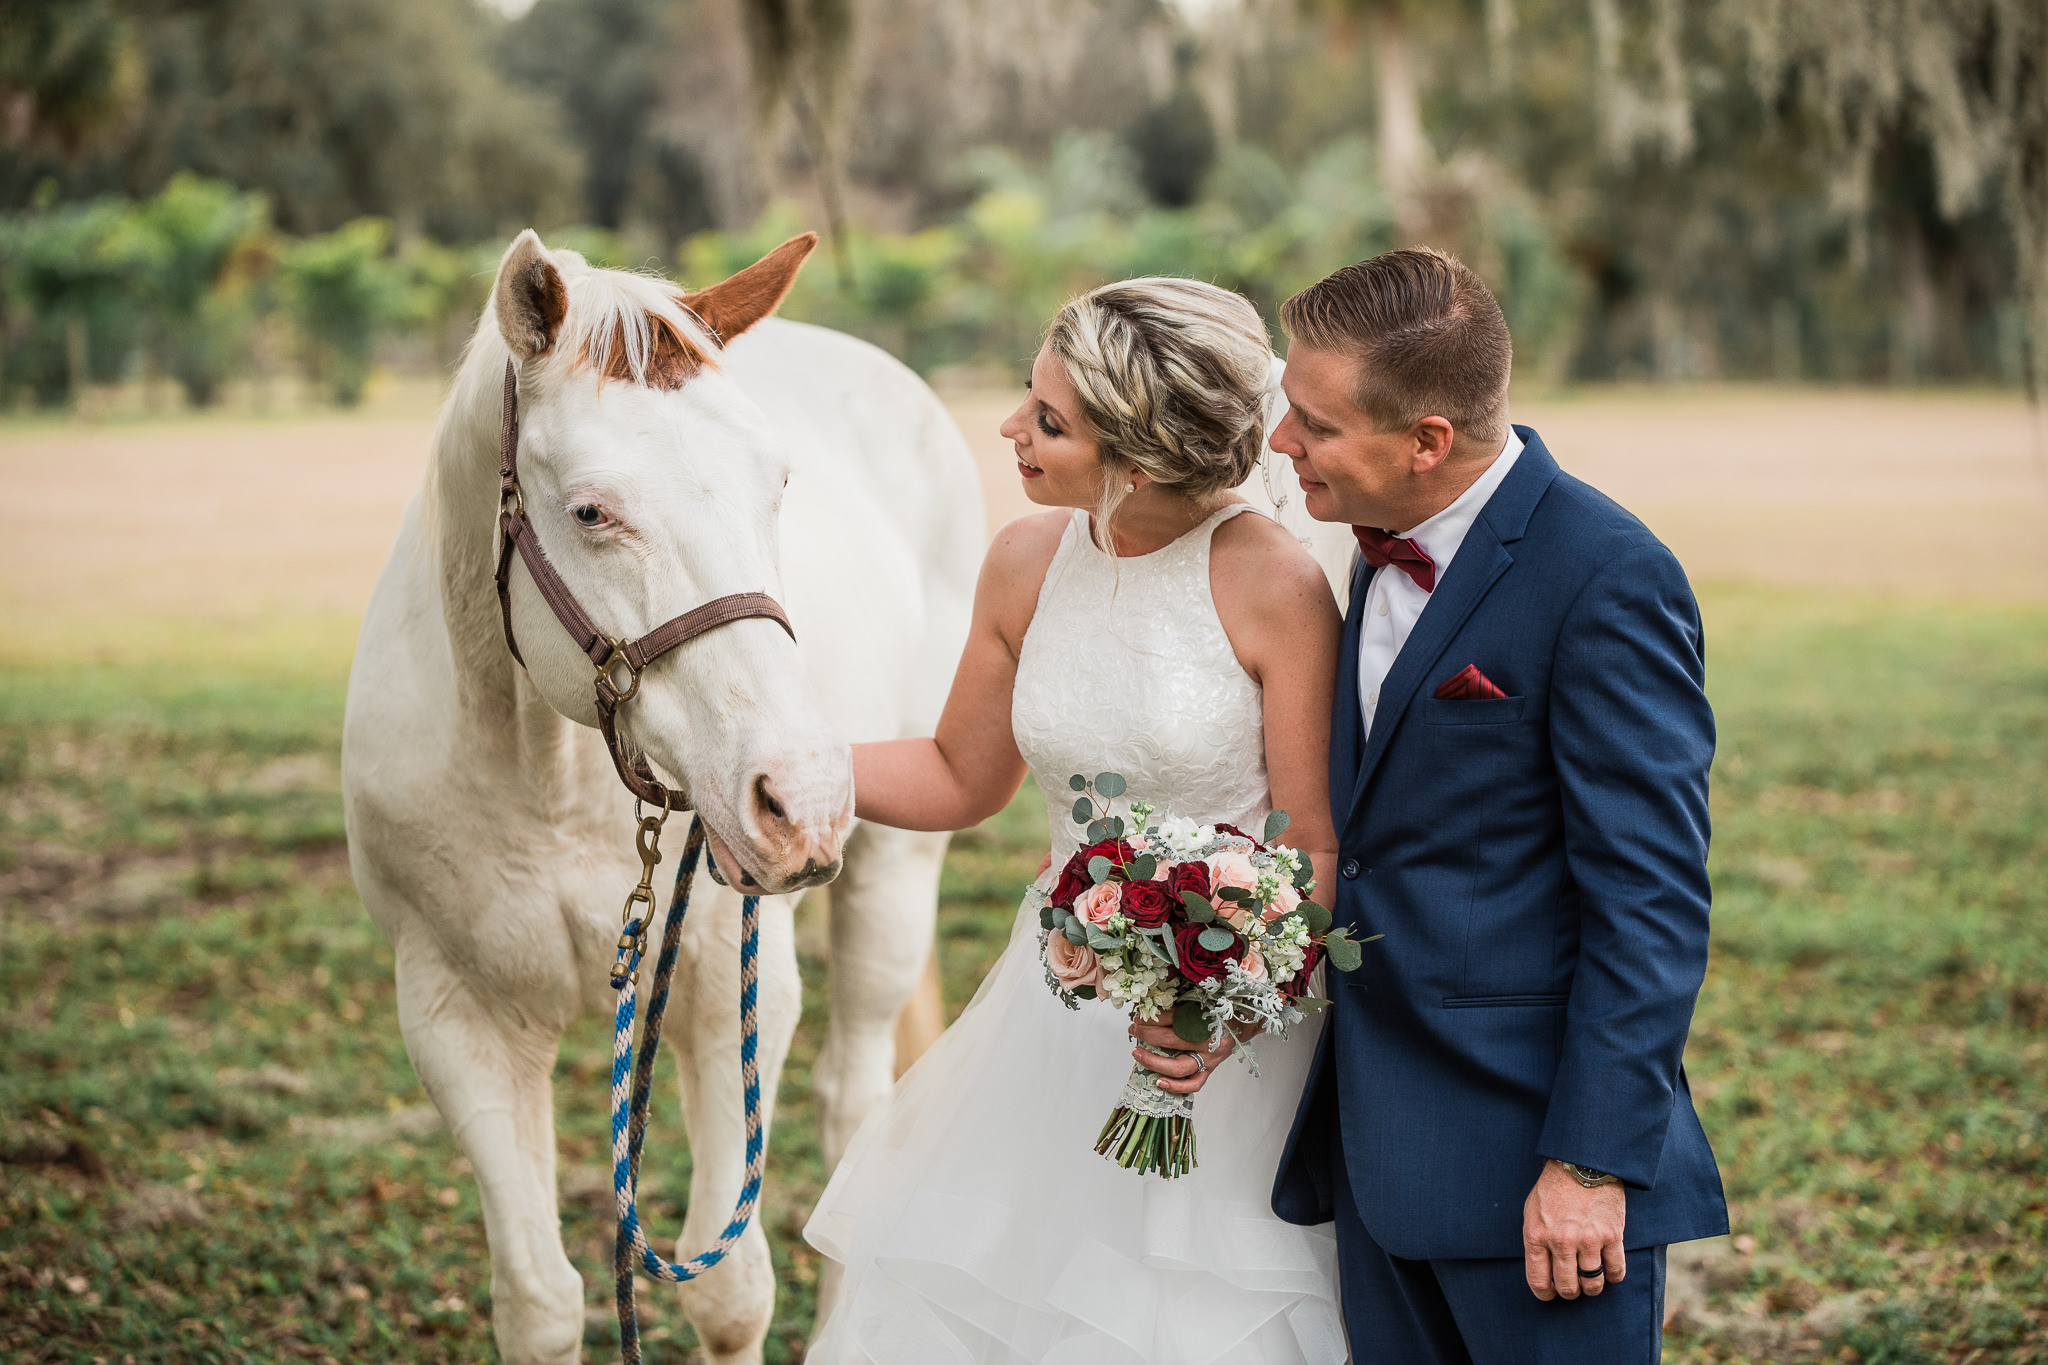 TAMPA_WEDDING_PHOTOGRAPHER_DRMZ_SPARROW_BARN_32.jpg